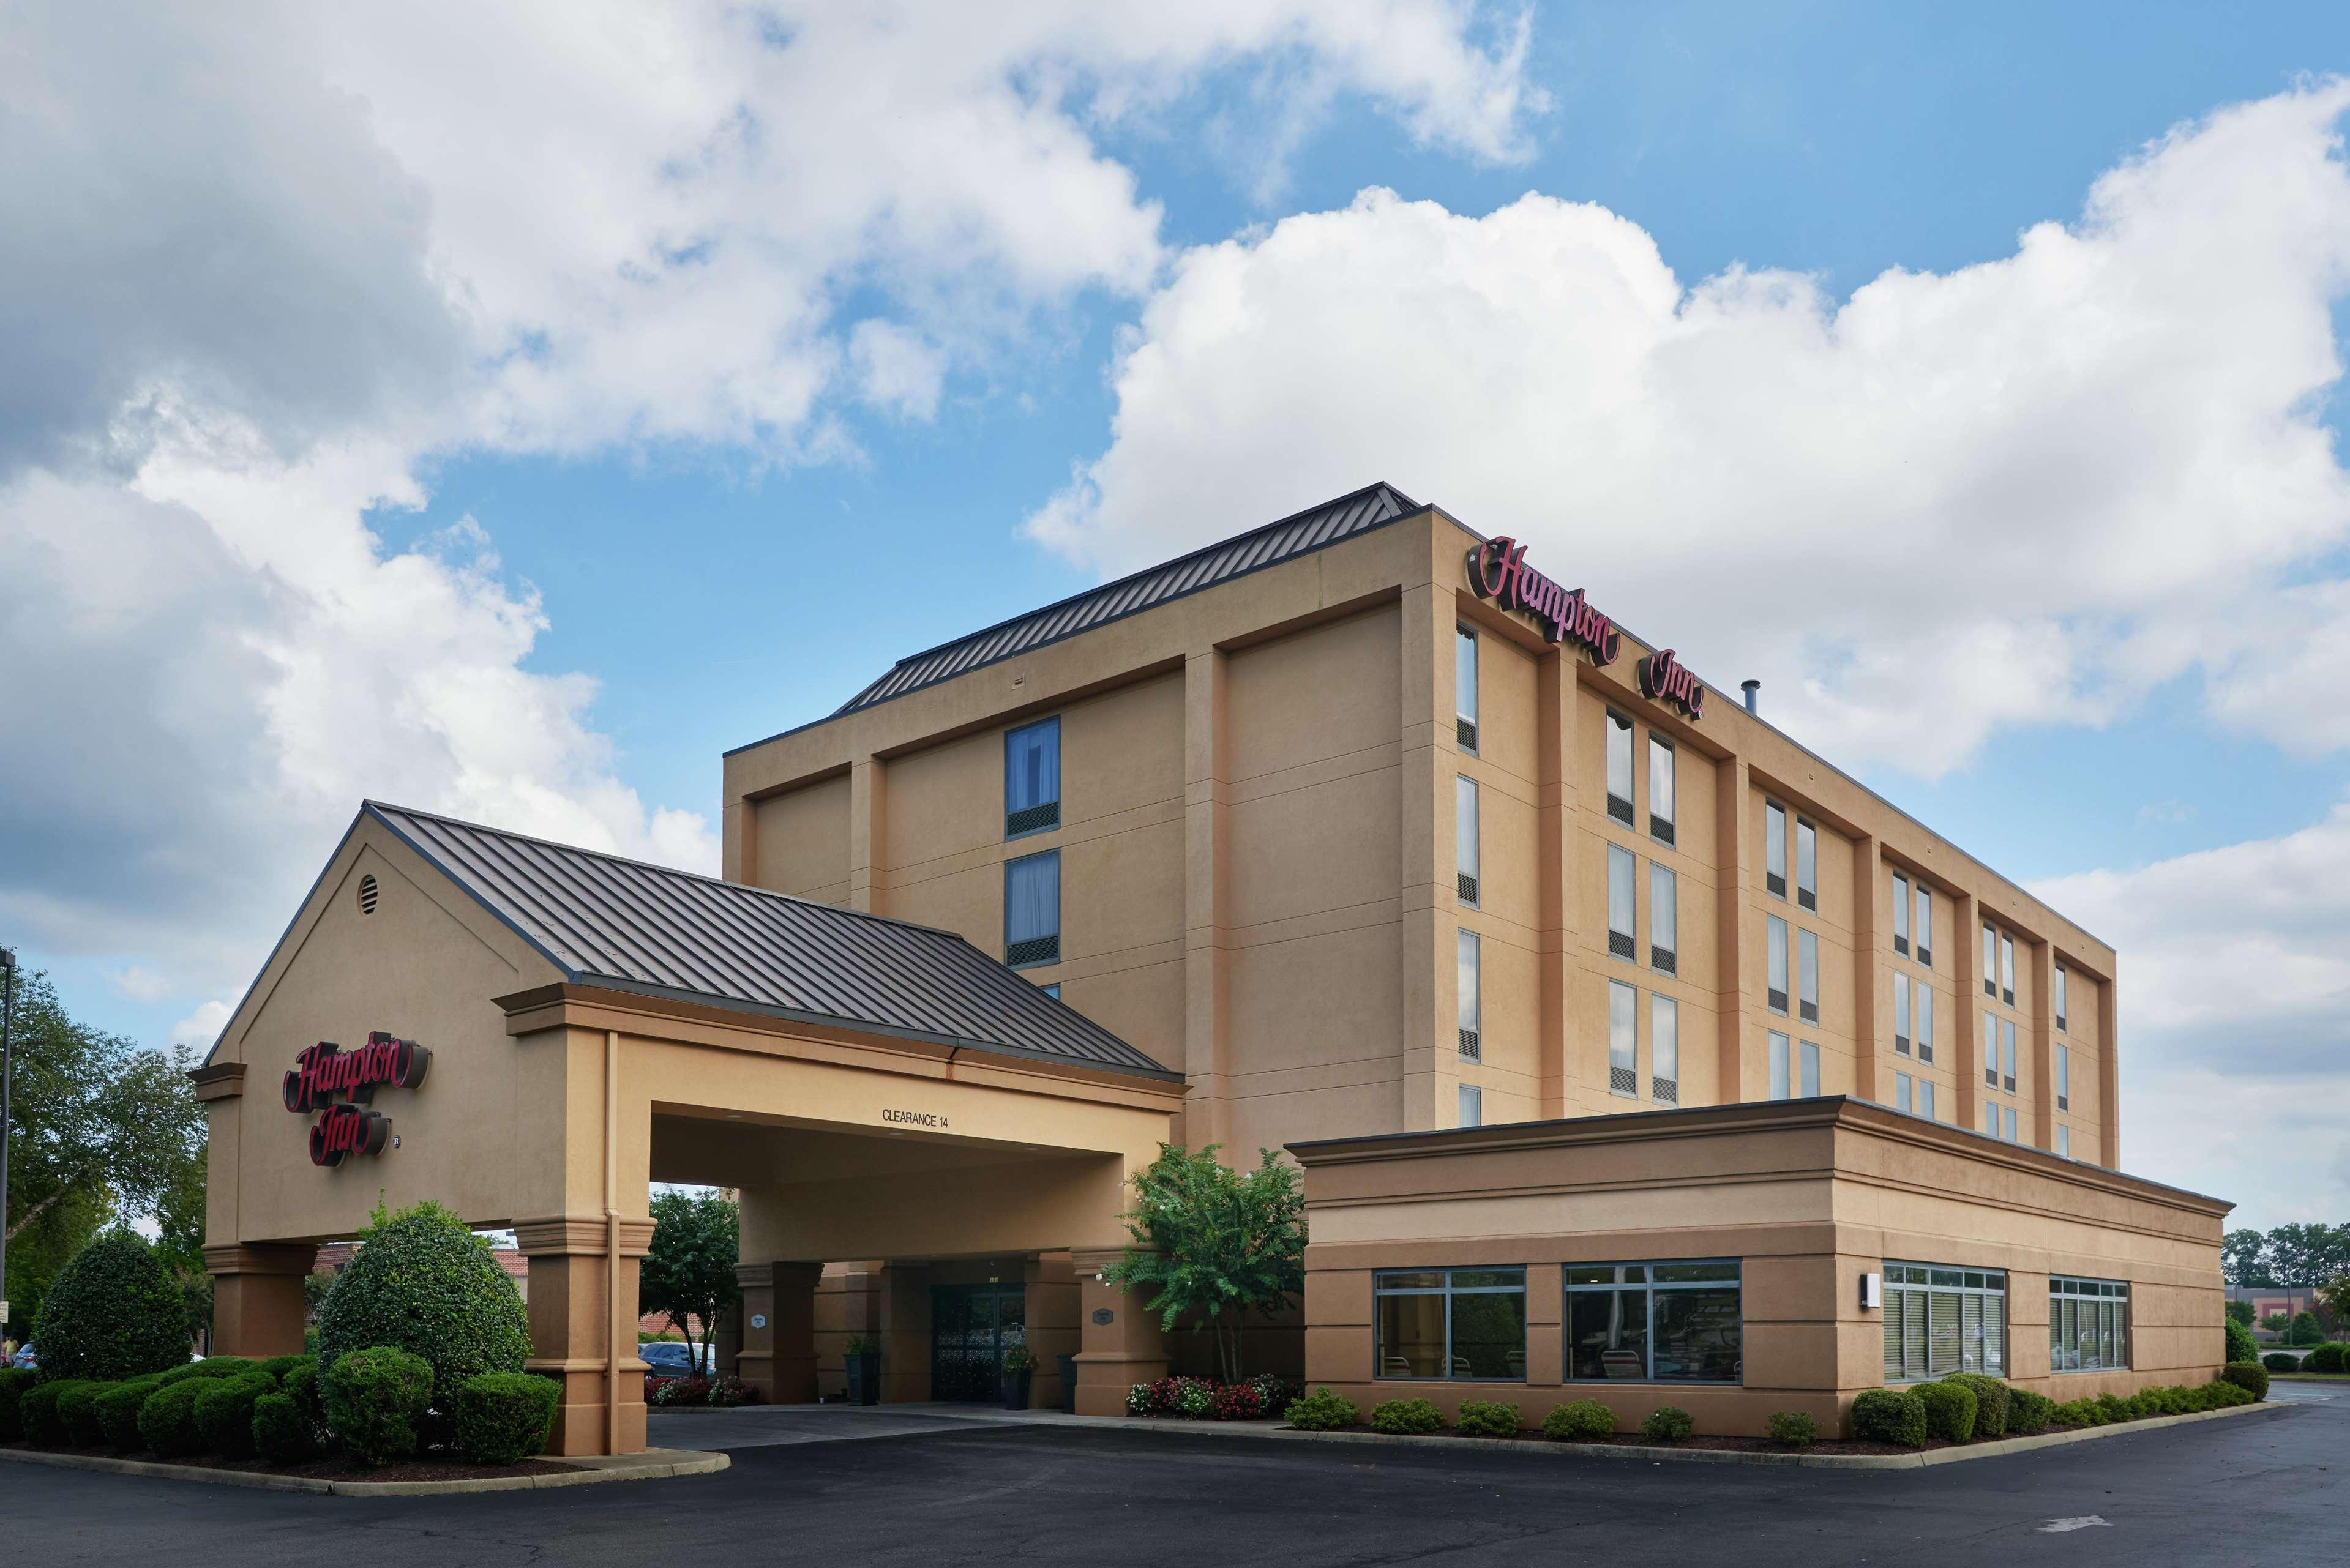 Hampton Inn Newport News Victory Blvd , Newport News